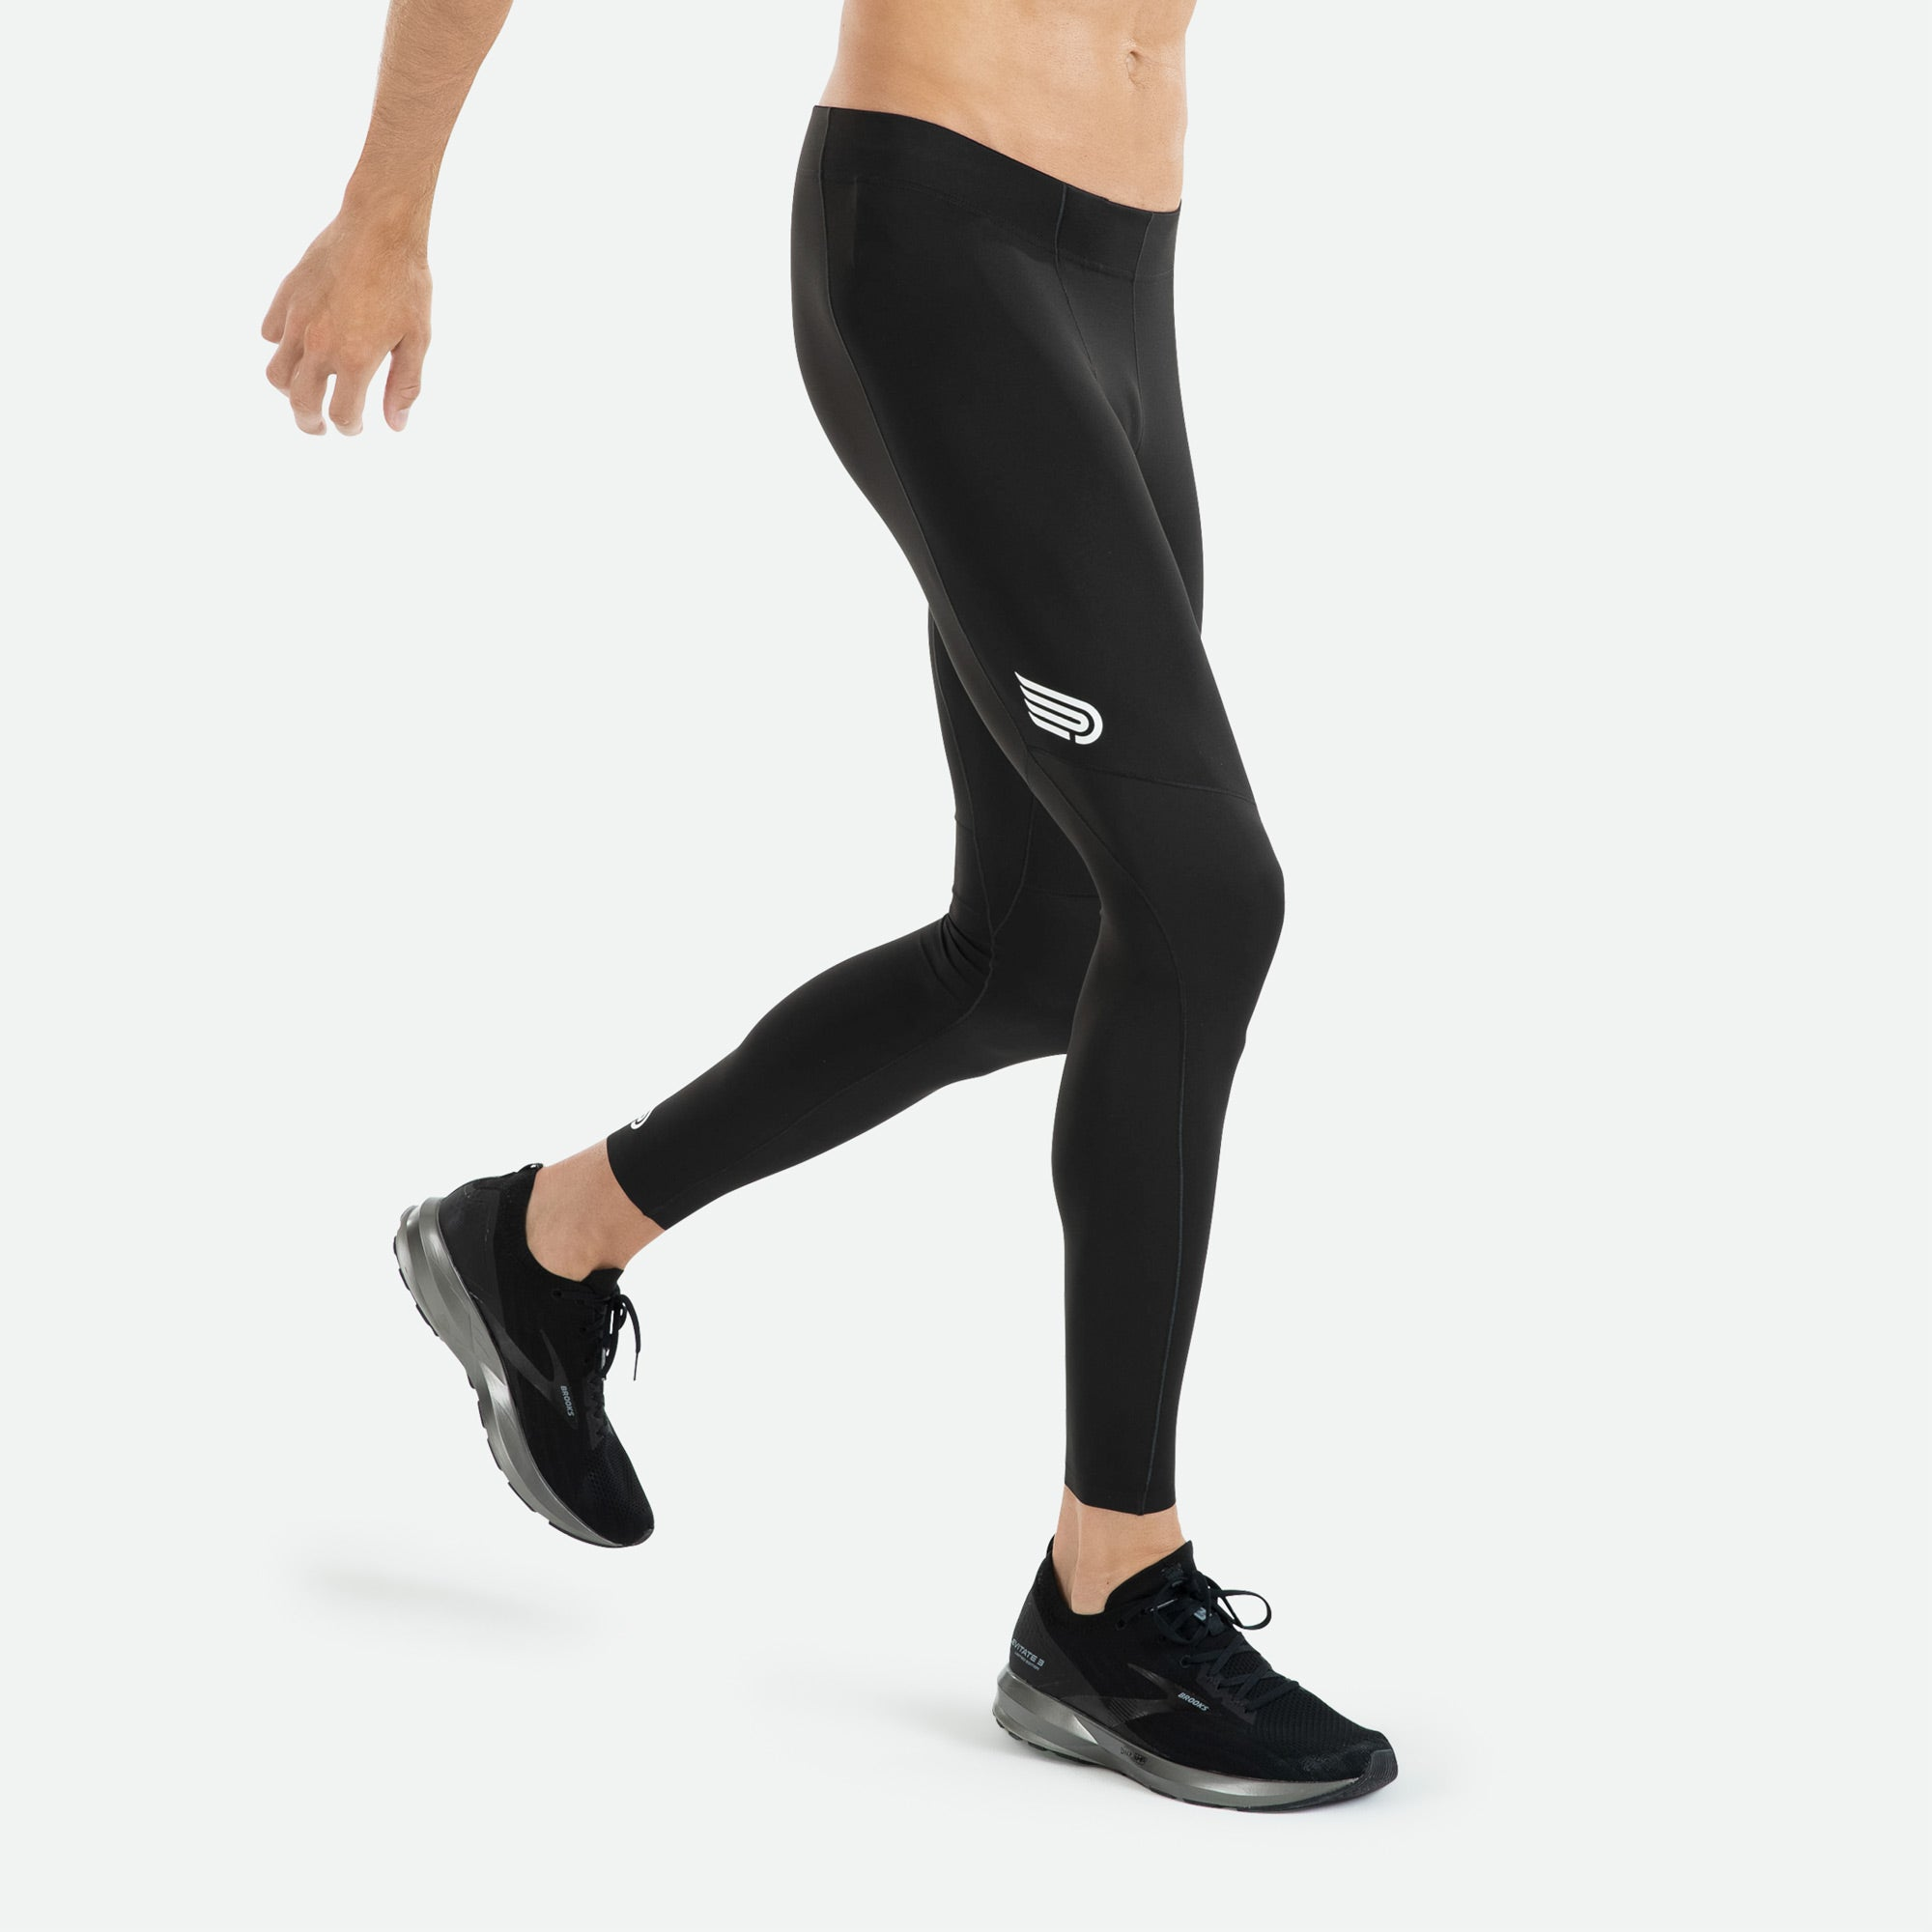 Men's Pressio compression tight offers a drawstring waistband for an adjustable, secure fit.